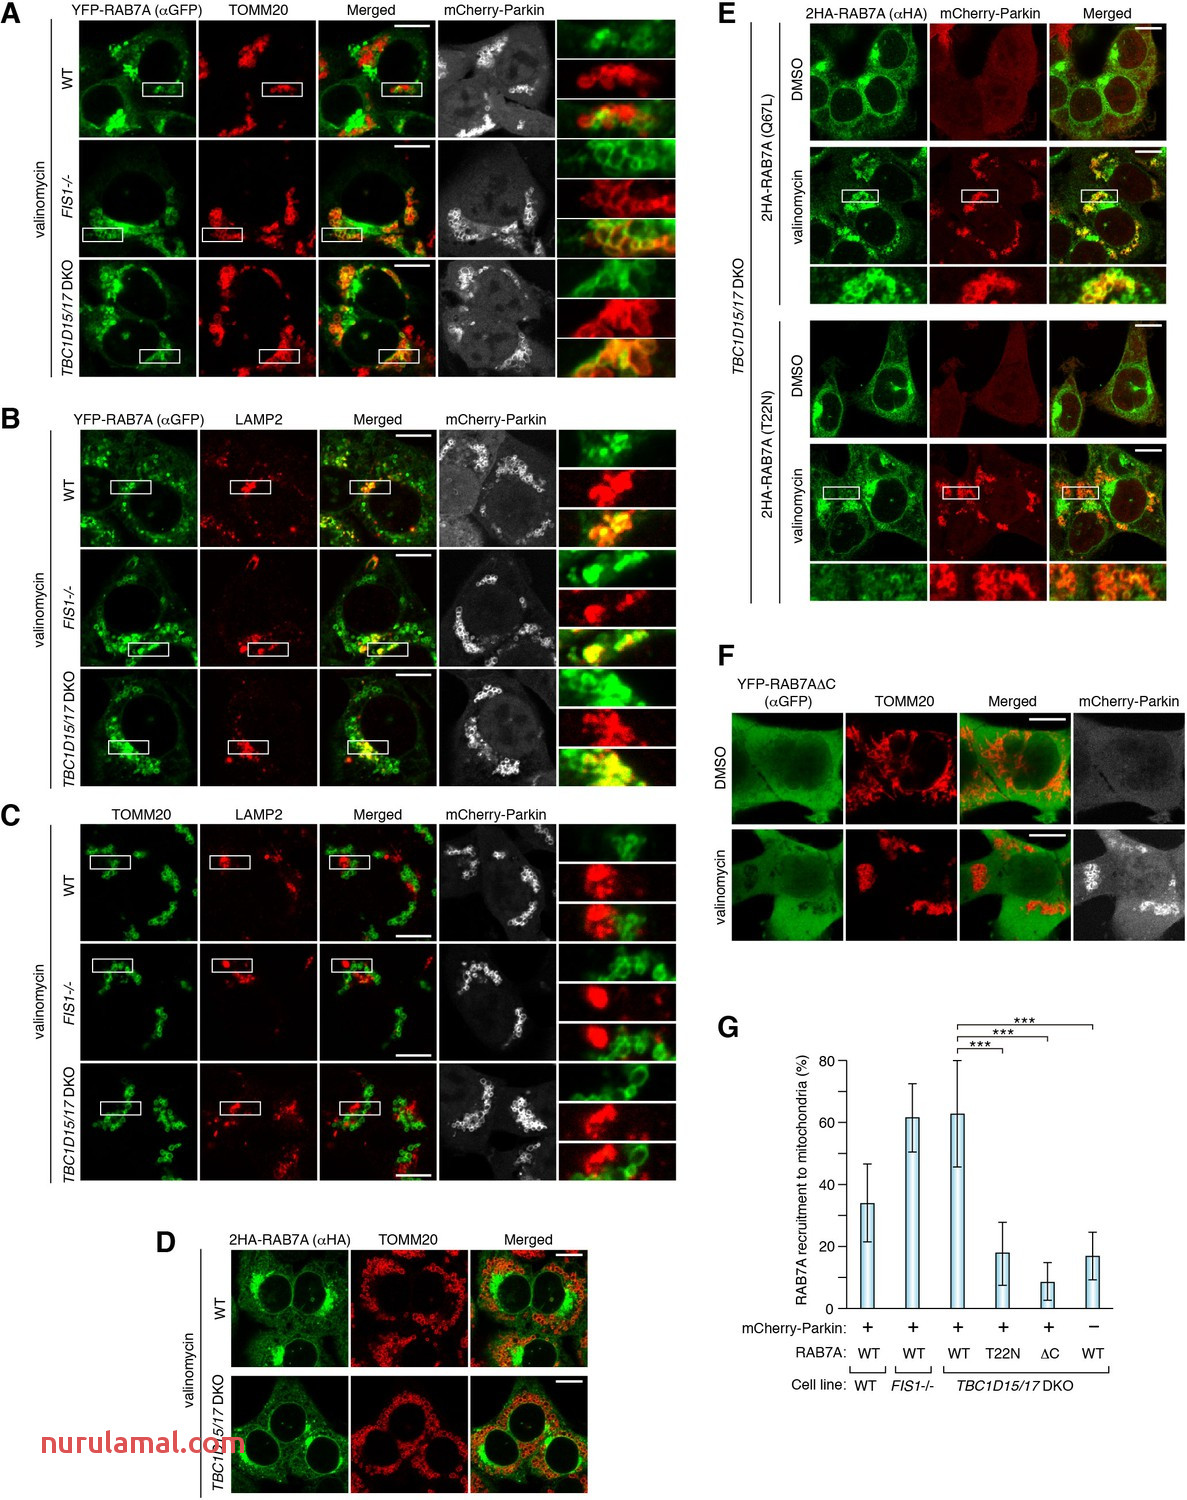 Figures and Data In Endosomal Rab Cycles Regulate Parkin